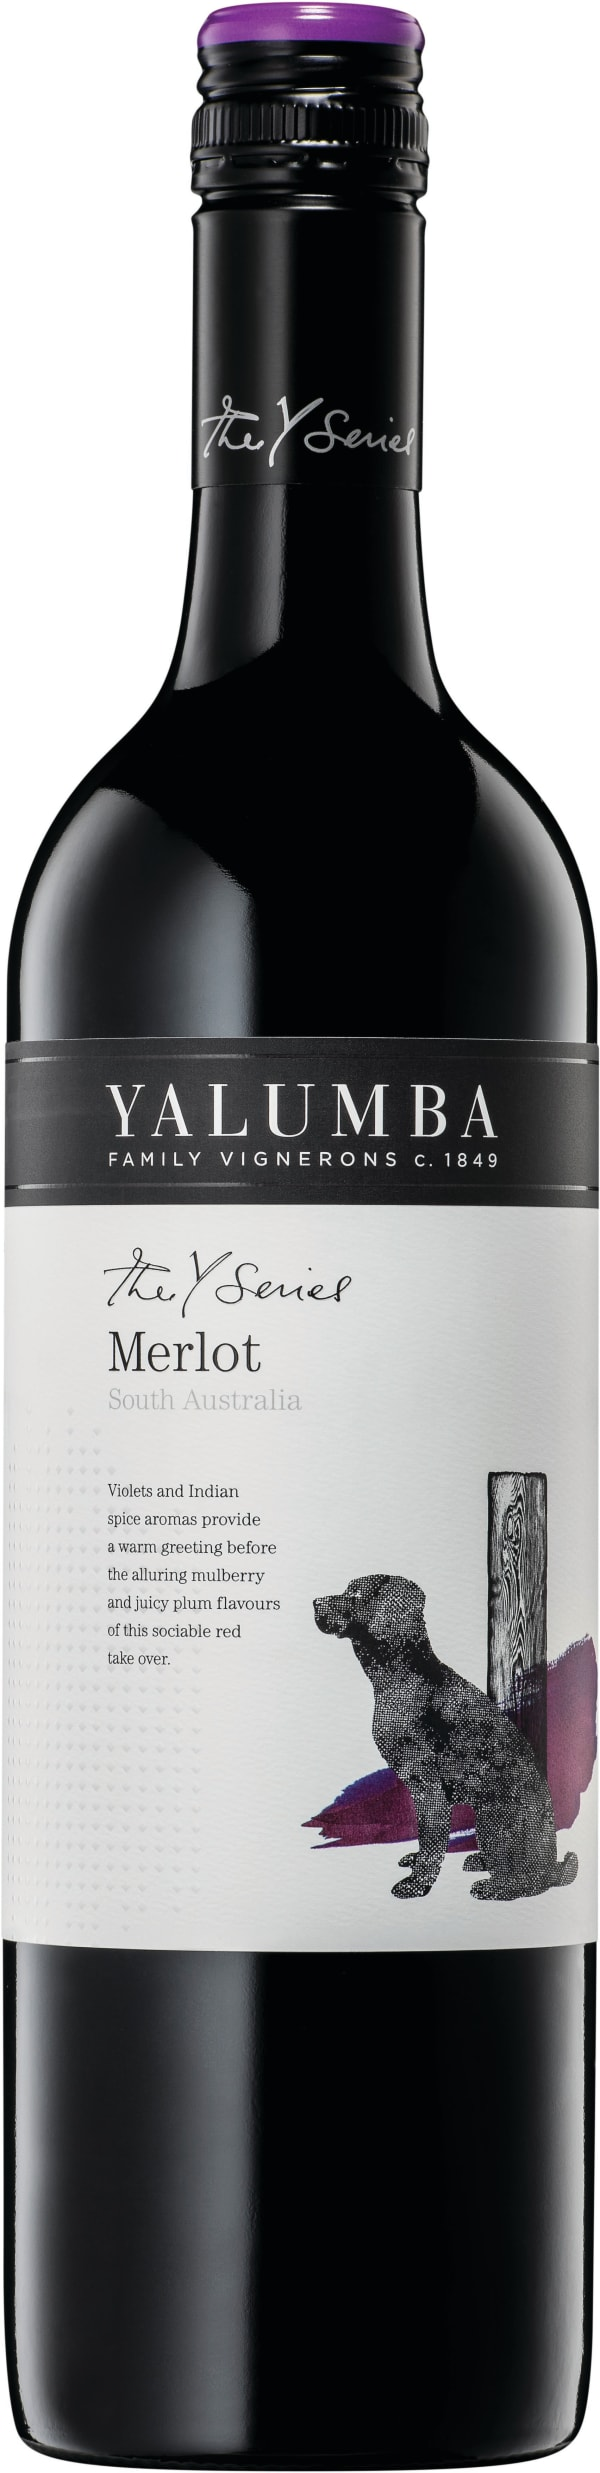 Yalumba Y Series Merlot 2017